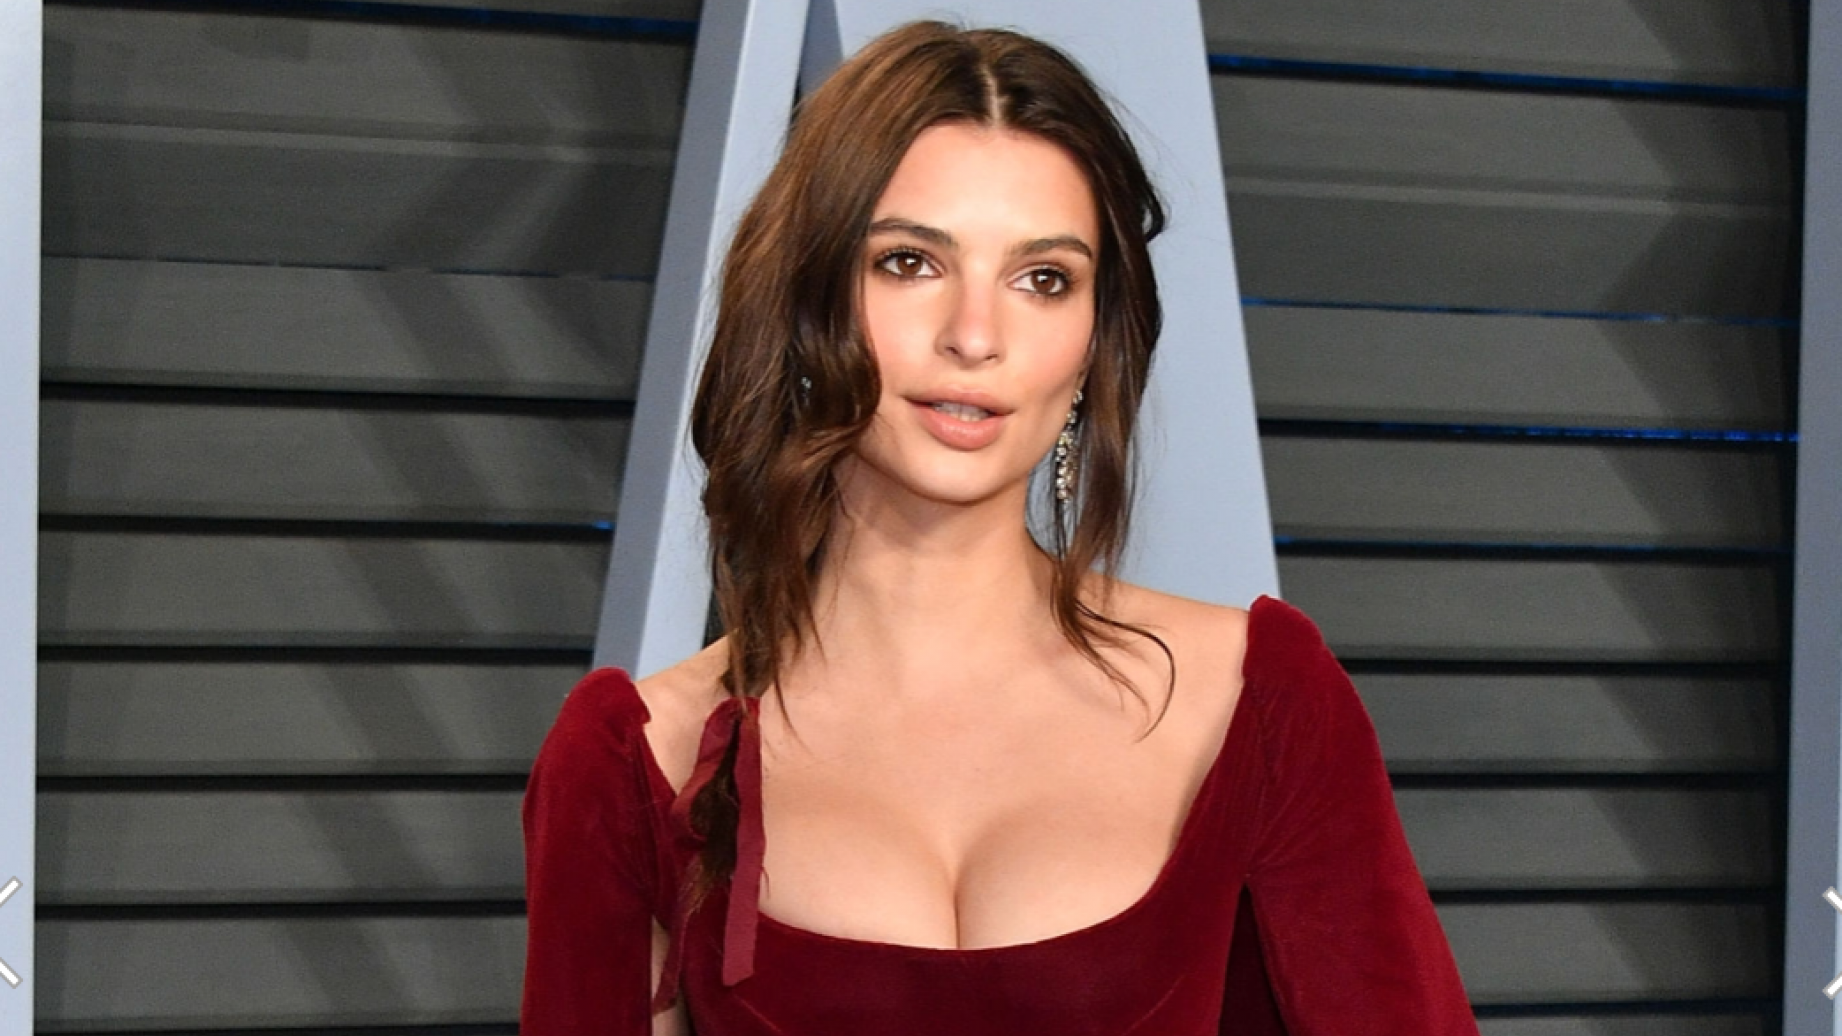 Emily Ratajkowski's Net Worth, Husband, TV Shows, Movies And Career 10